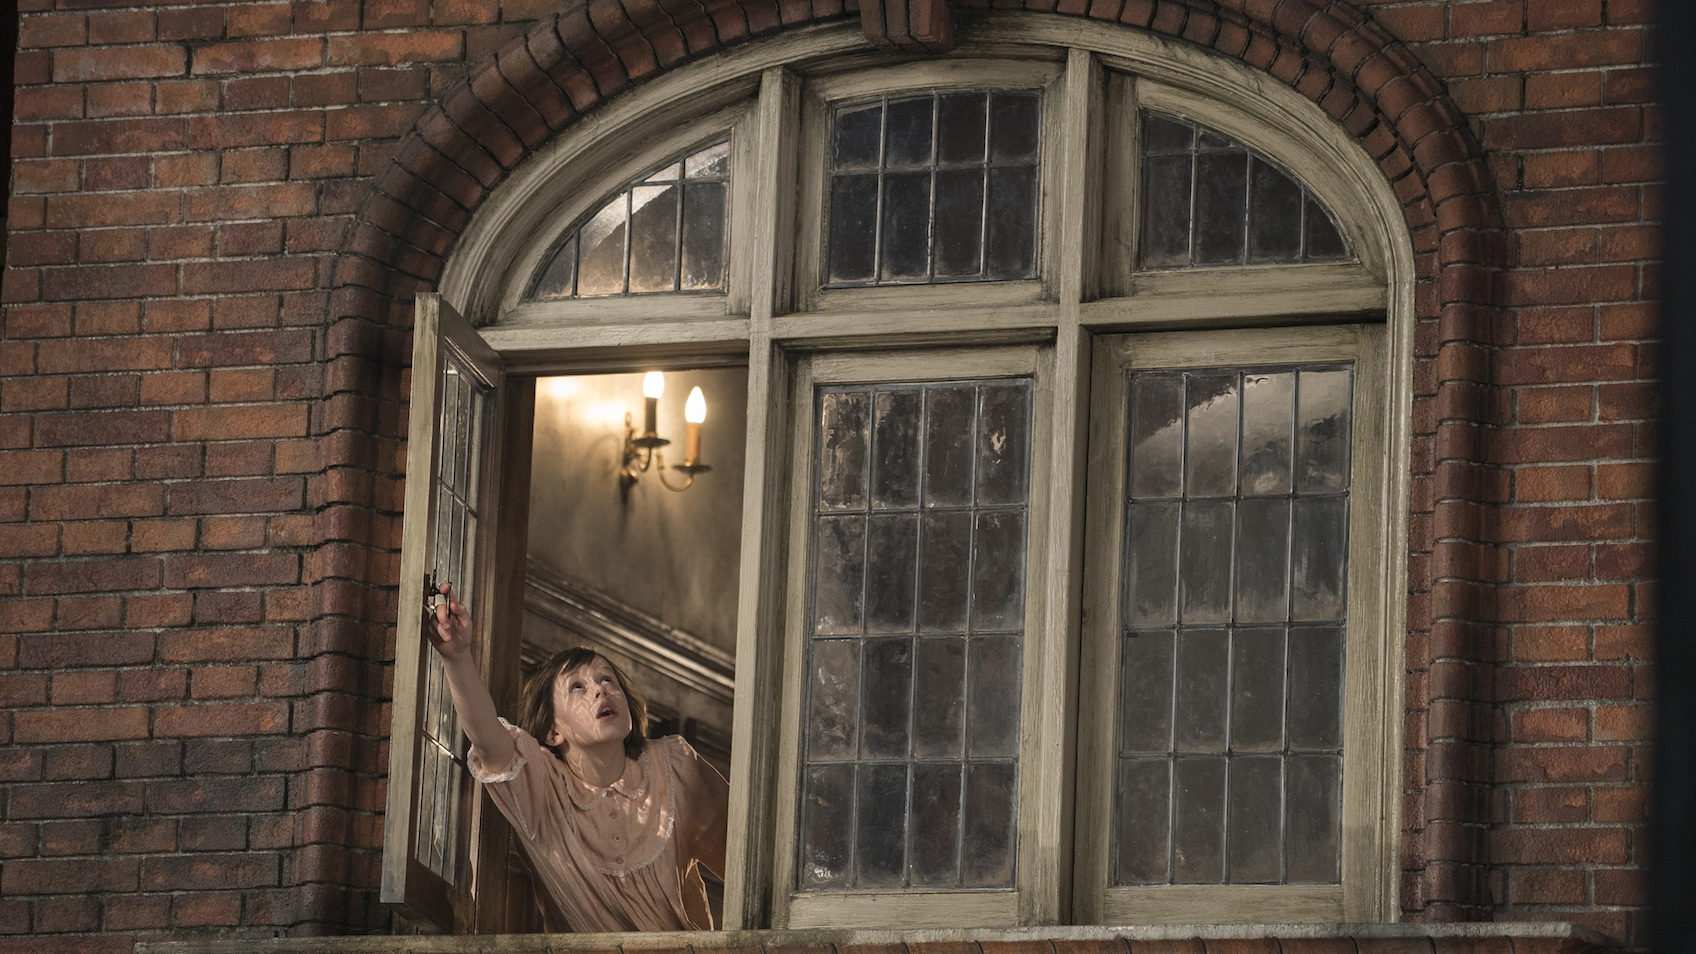 """Sophie (played by Ruby Barnhill) looking out a window in the movie """"The BFG"""""""